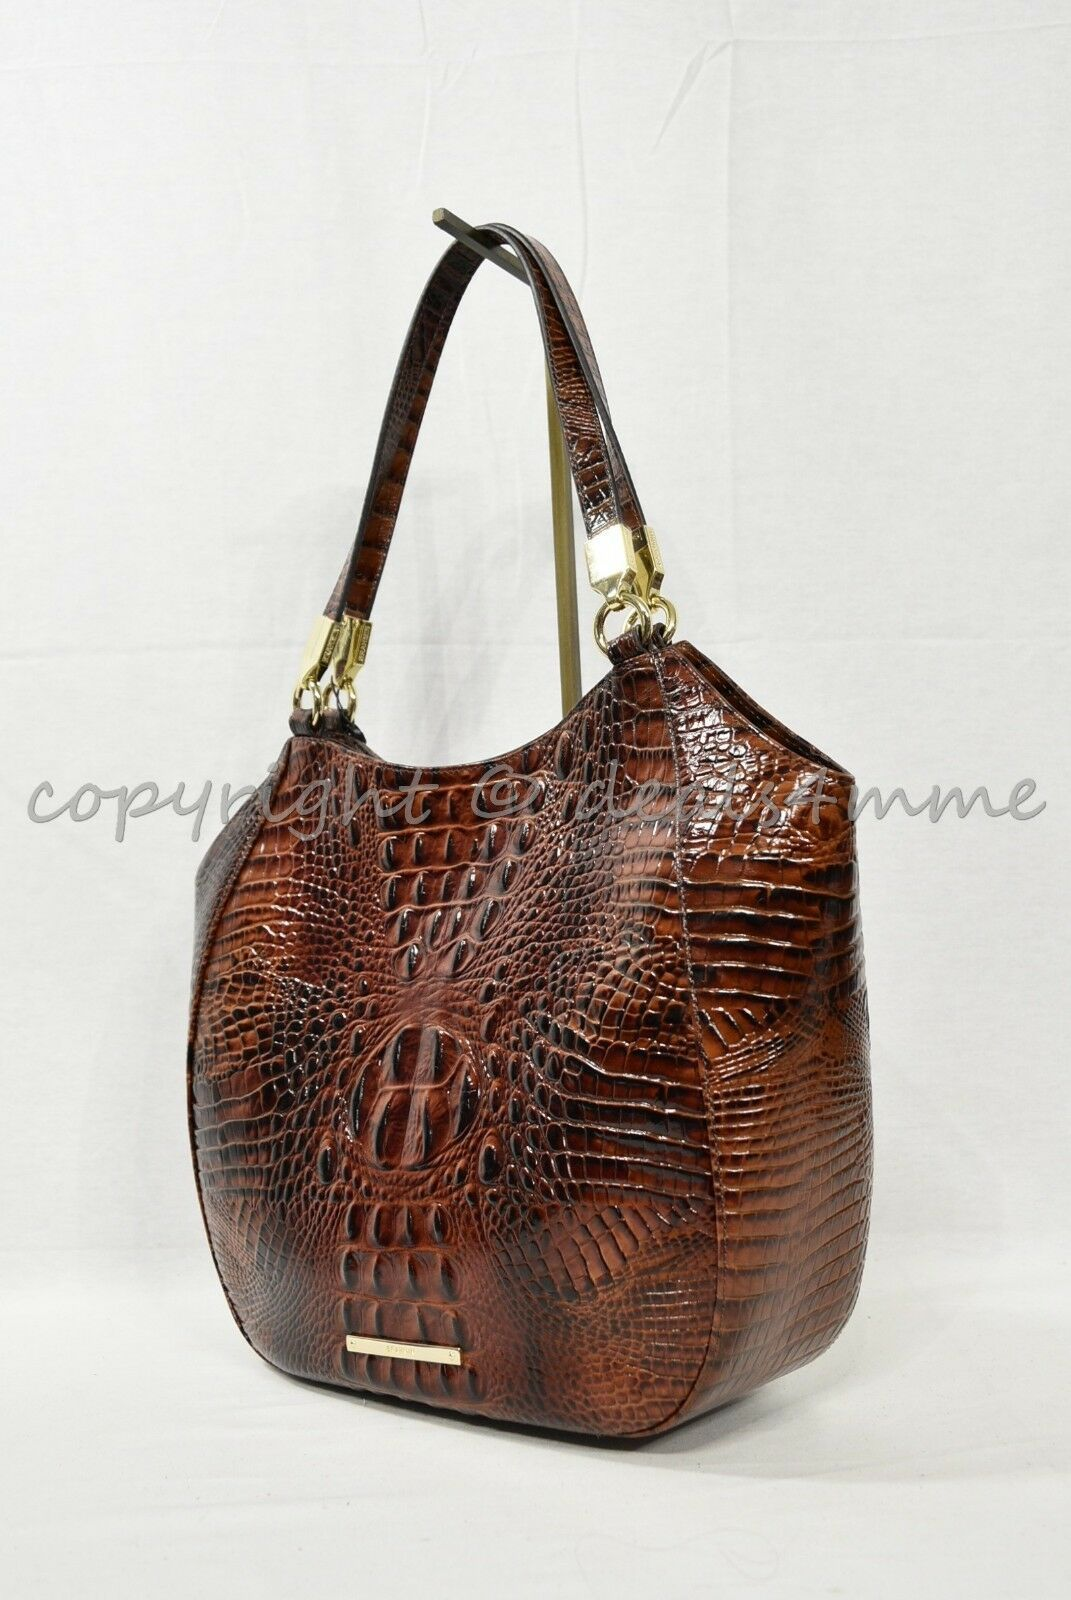 NWT Brahmin Marianna Leather Tote / Shoulder Bag in Pecan Melbourne